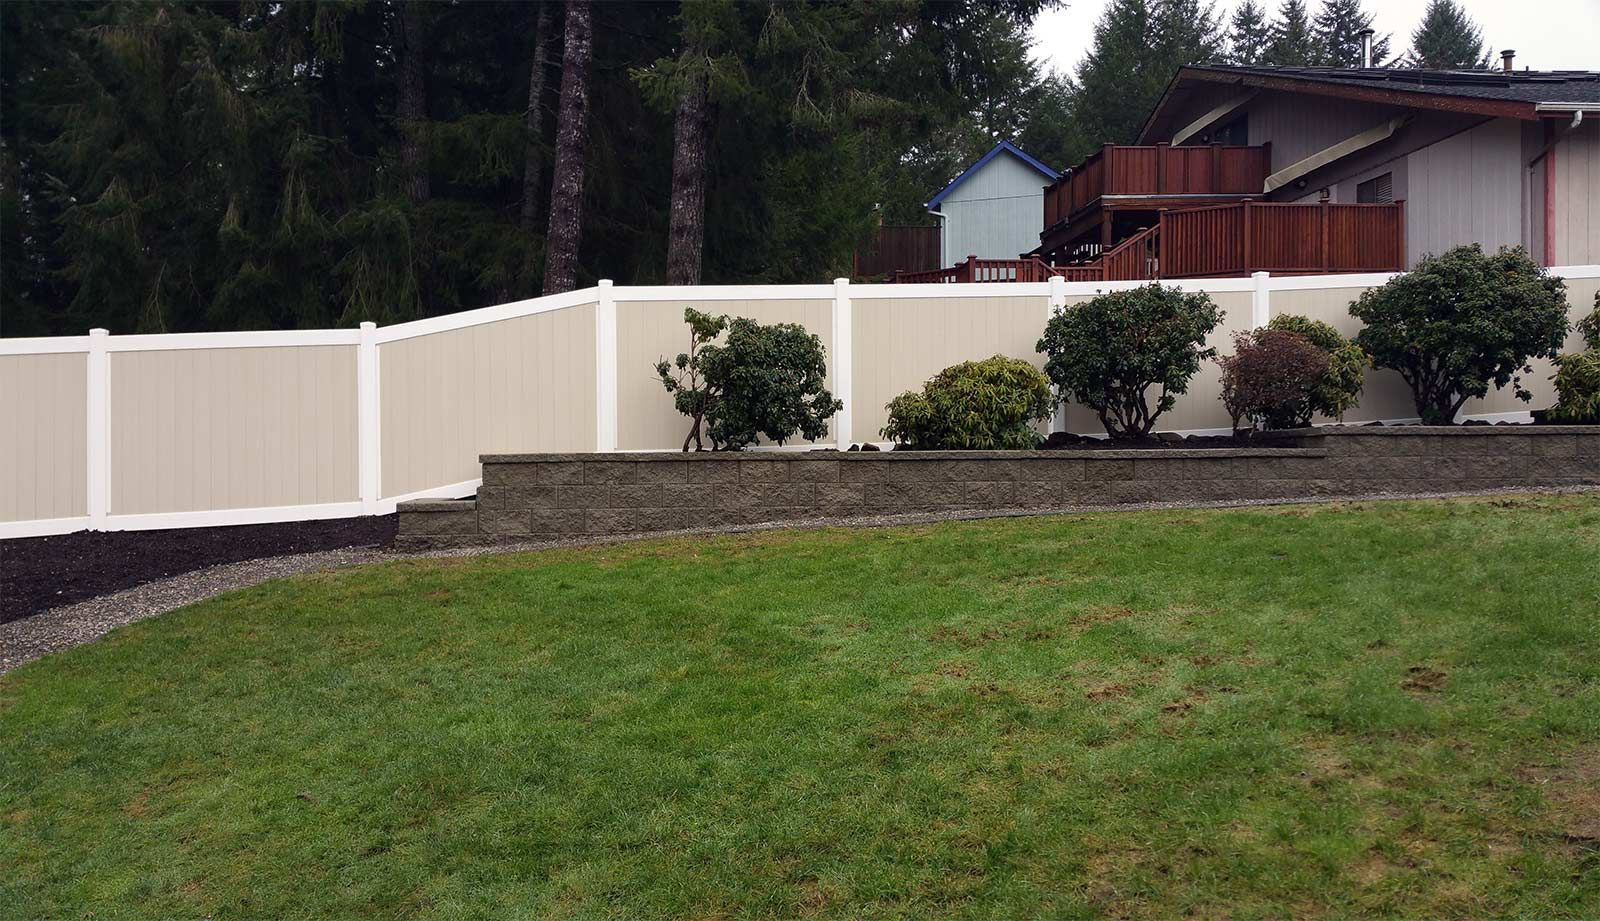 Tiered Retaining Wall With Vinyl Fencing In West Olympia Landscaping Around Patio Sloped Backyard Vinyl Fence